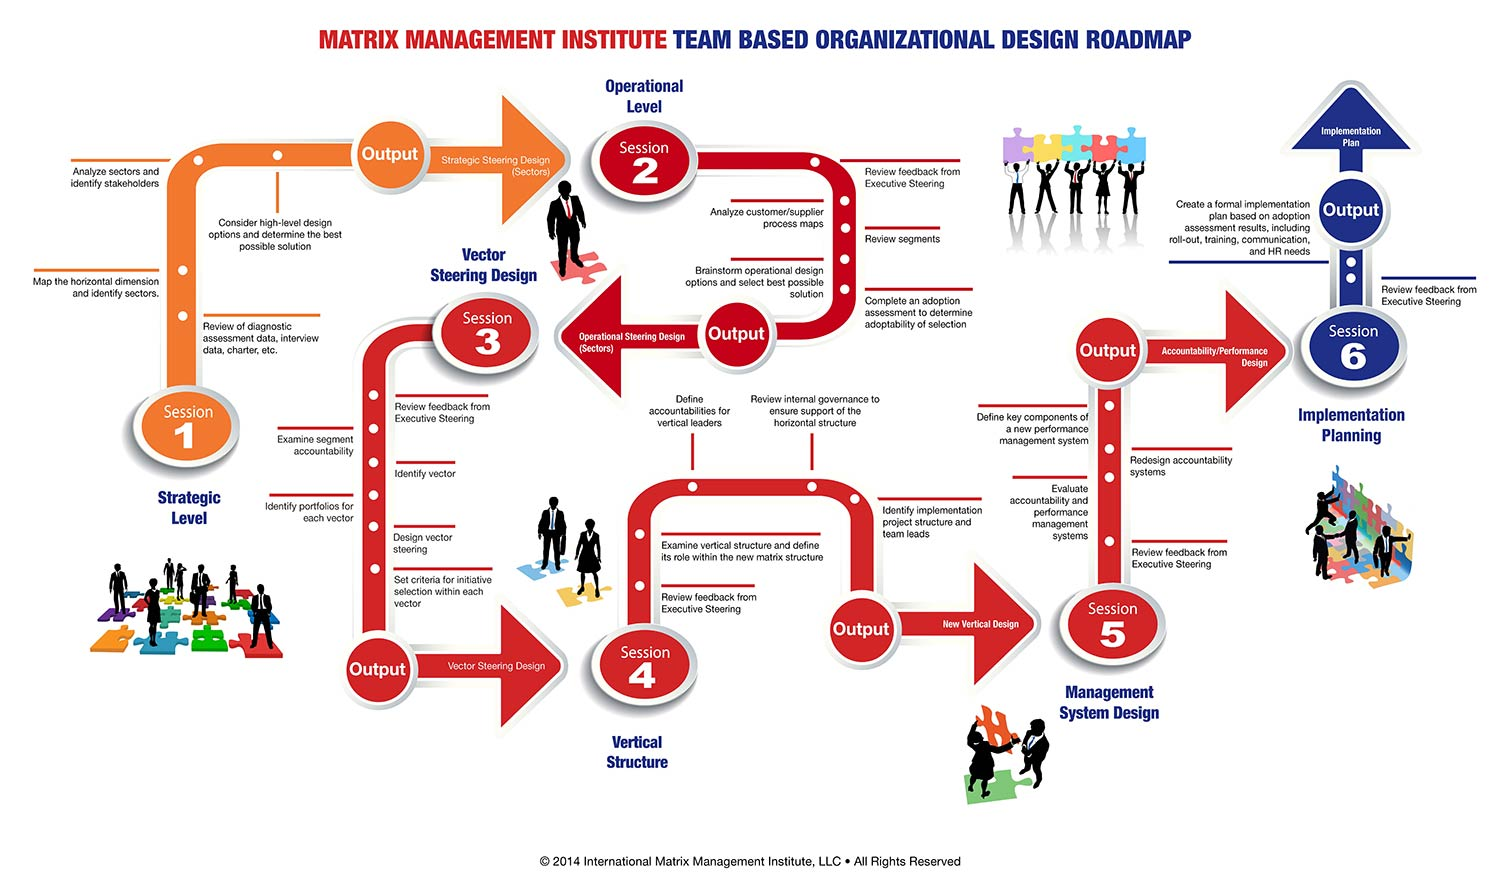 Team-based organizational design roadmap